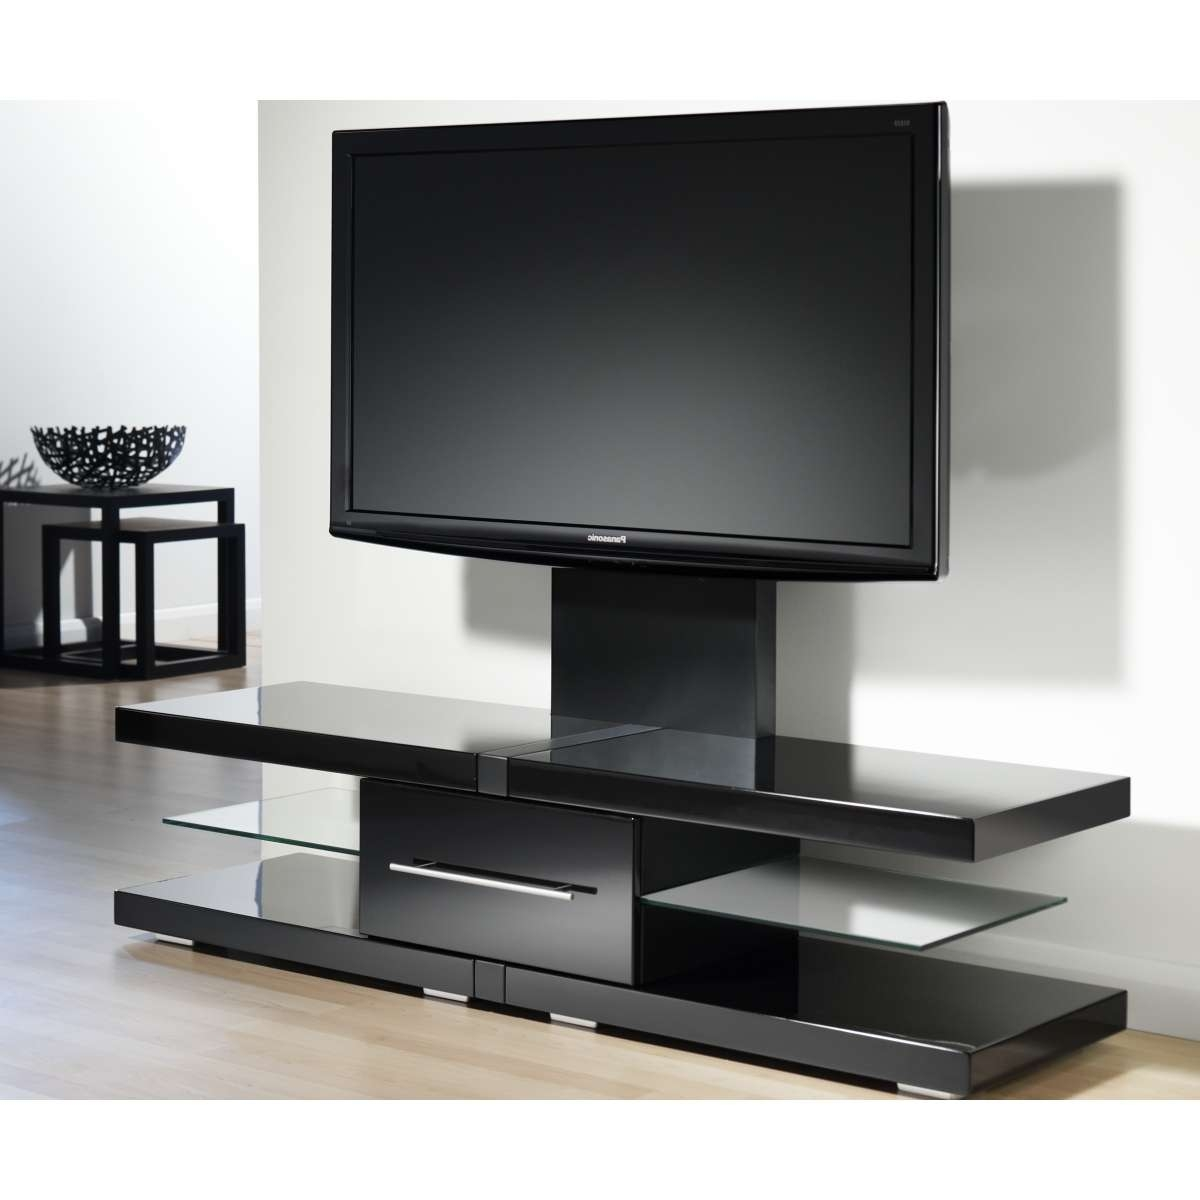 Beautiful Flat Screen Tv Stands With Mounts 38 For Simple Home Throughout Tv Stands 38 Inches Wide (View 11 of 15)